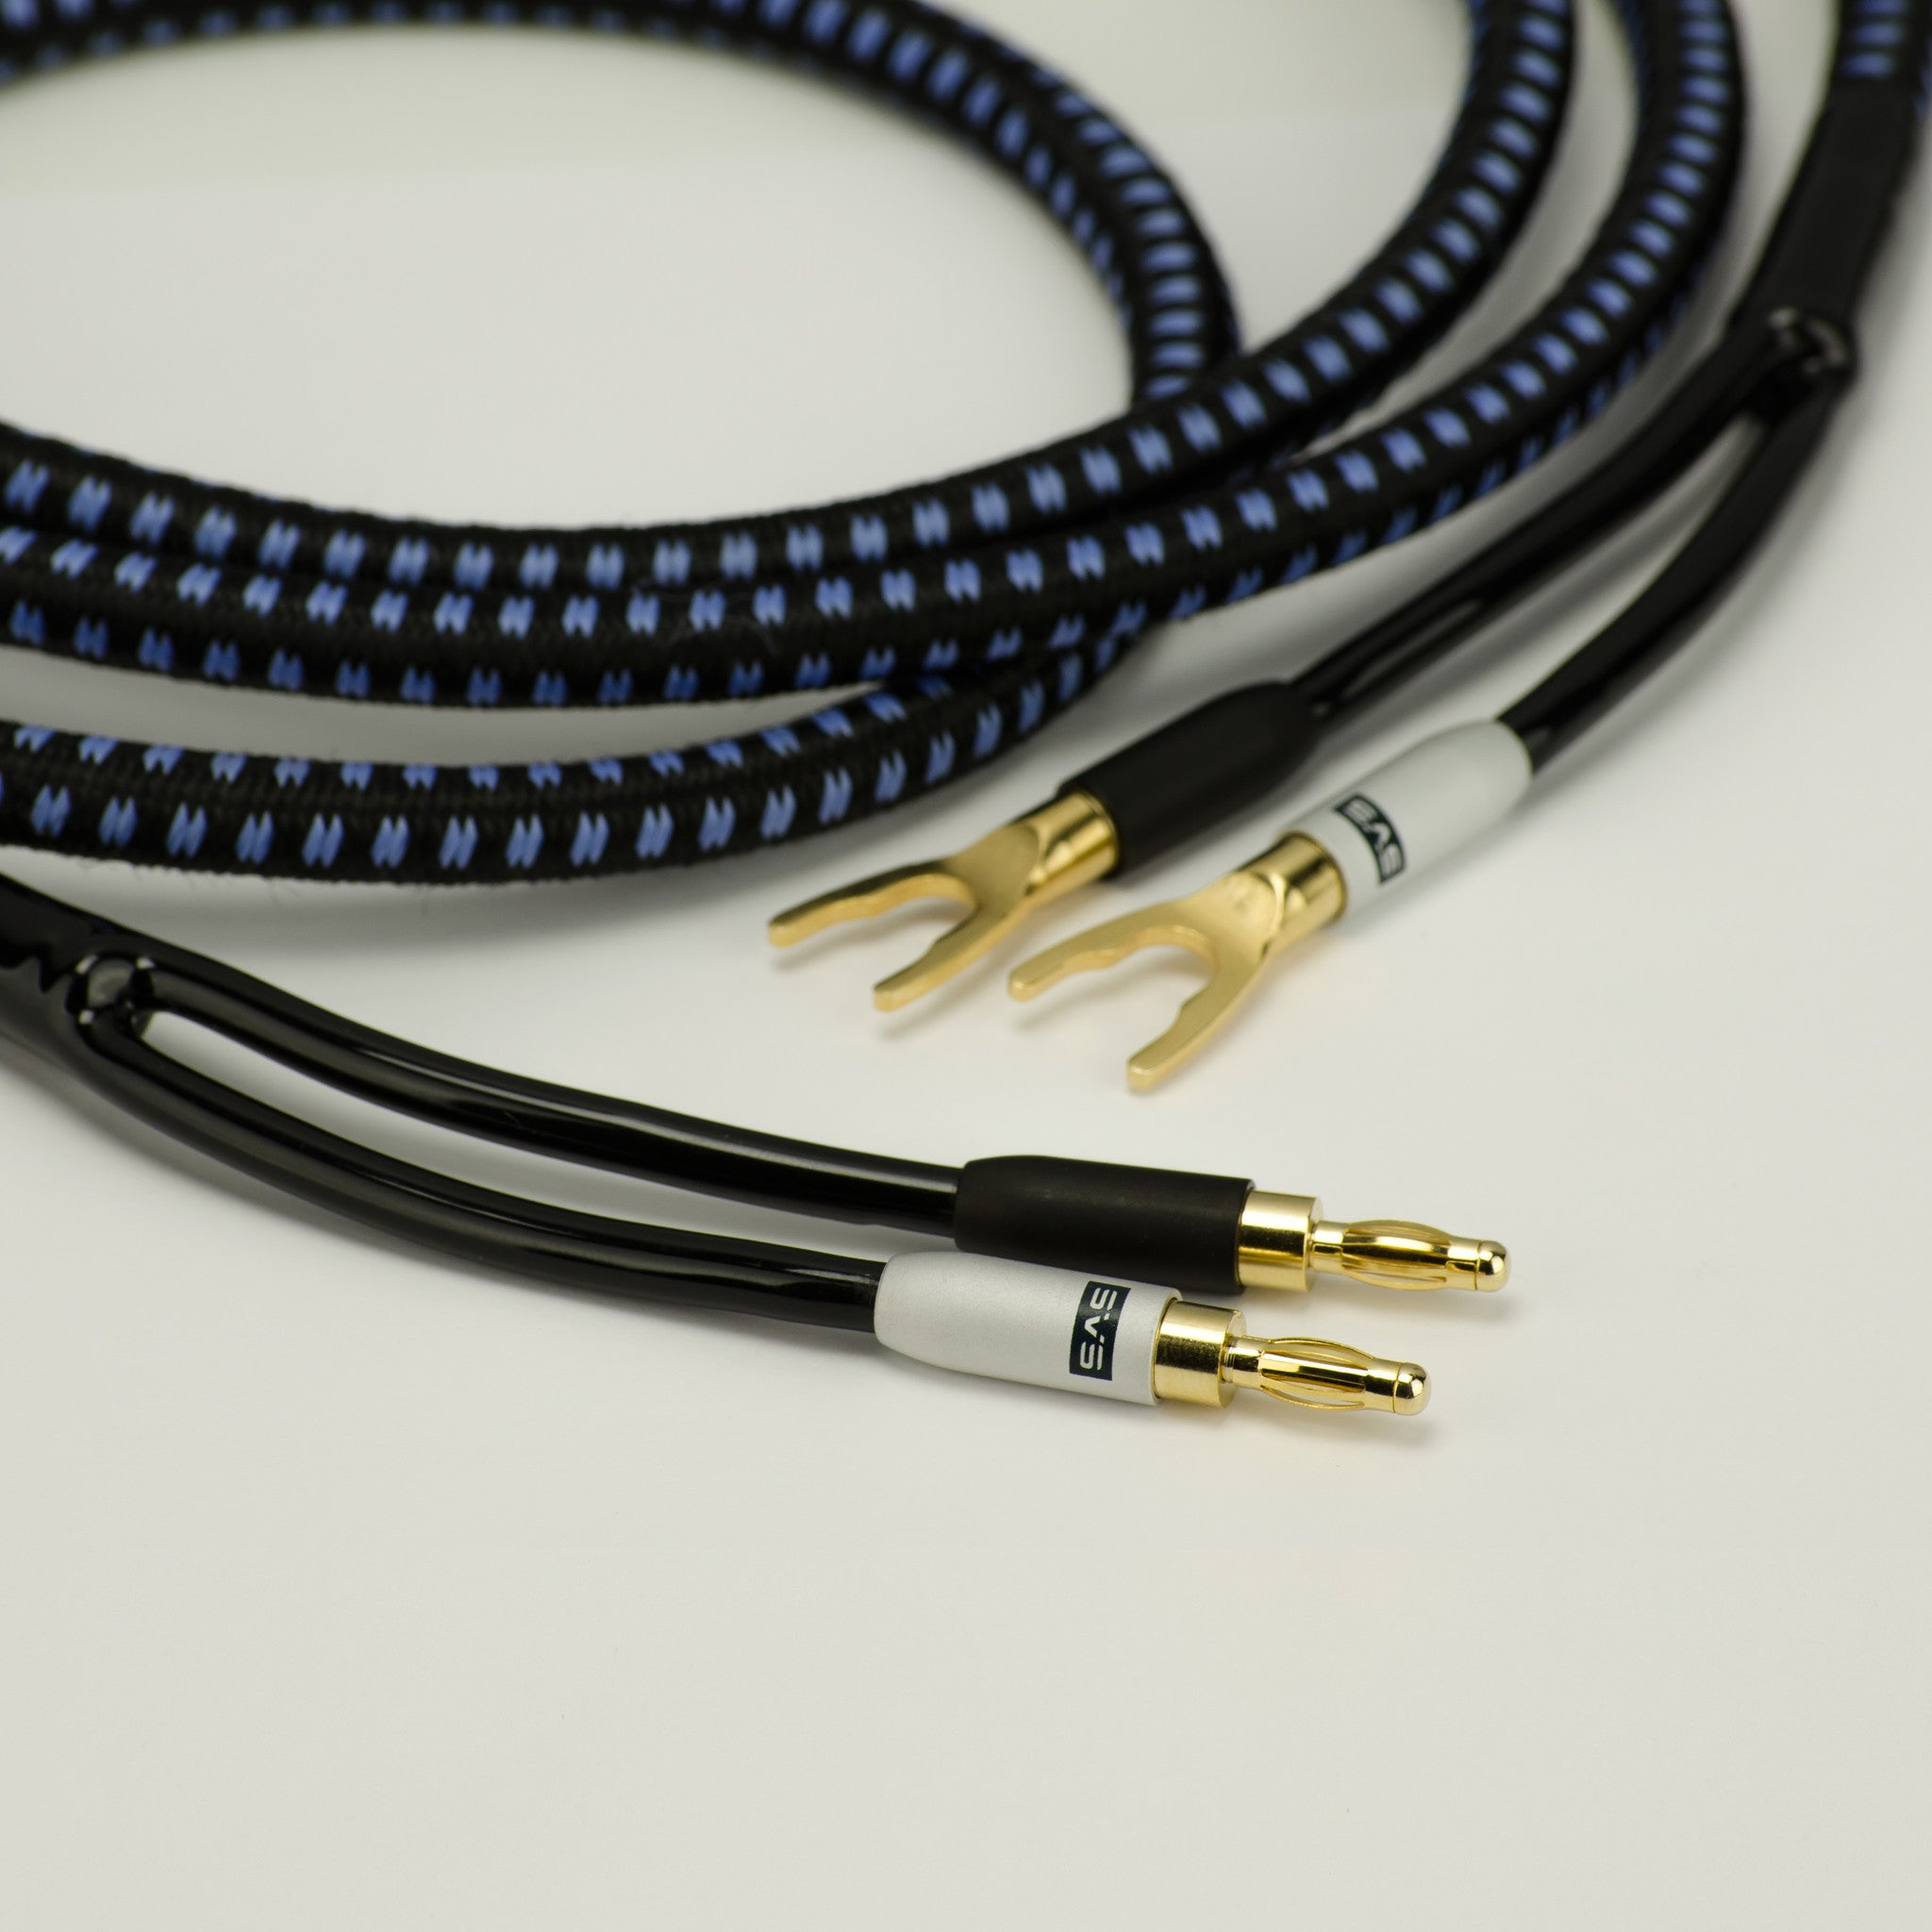 Svs soundpath ultra speaker cable greentooth